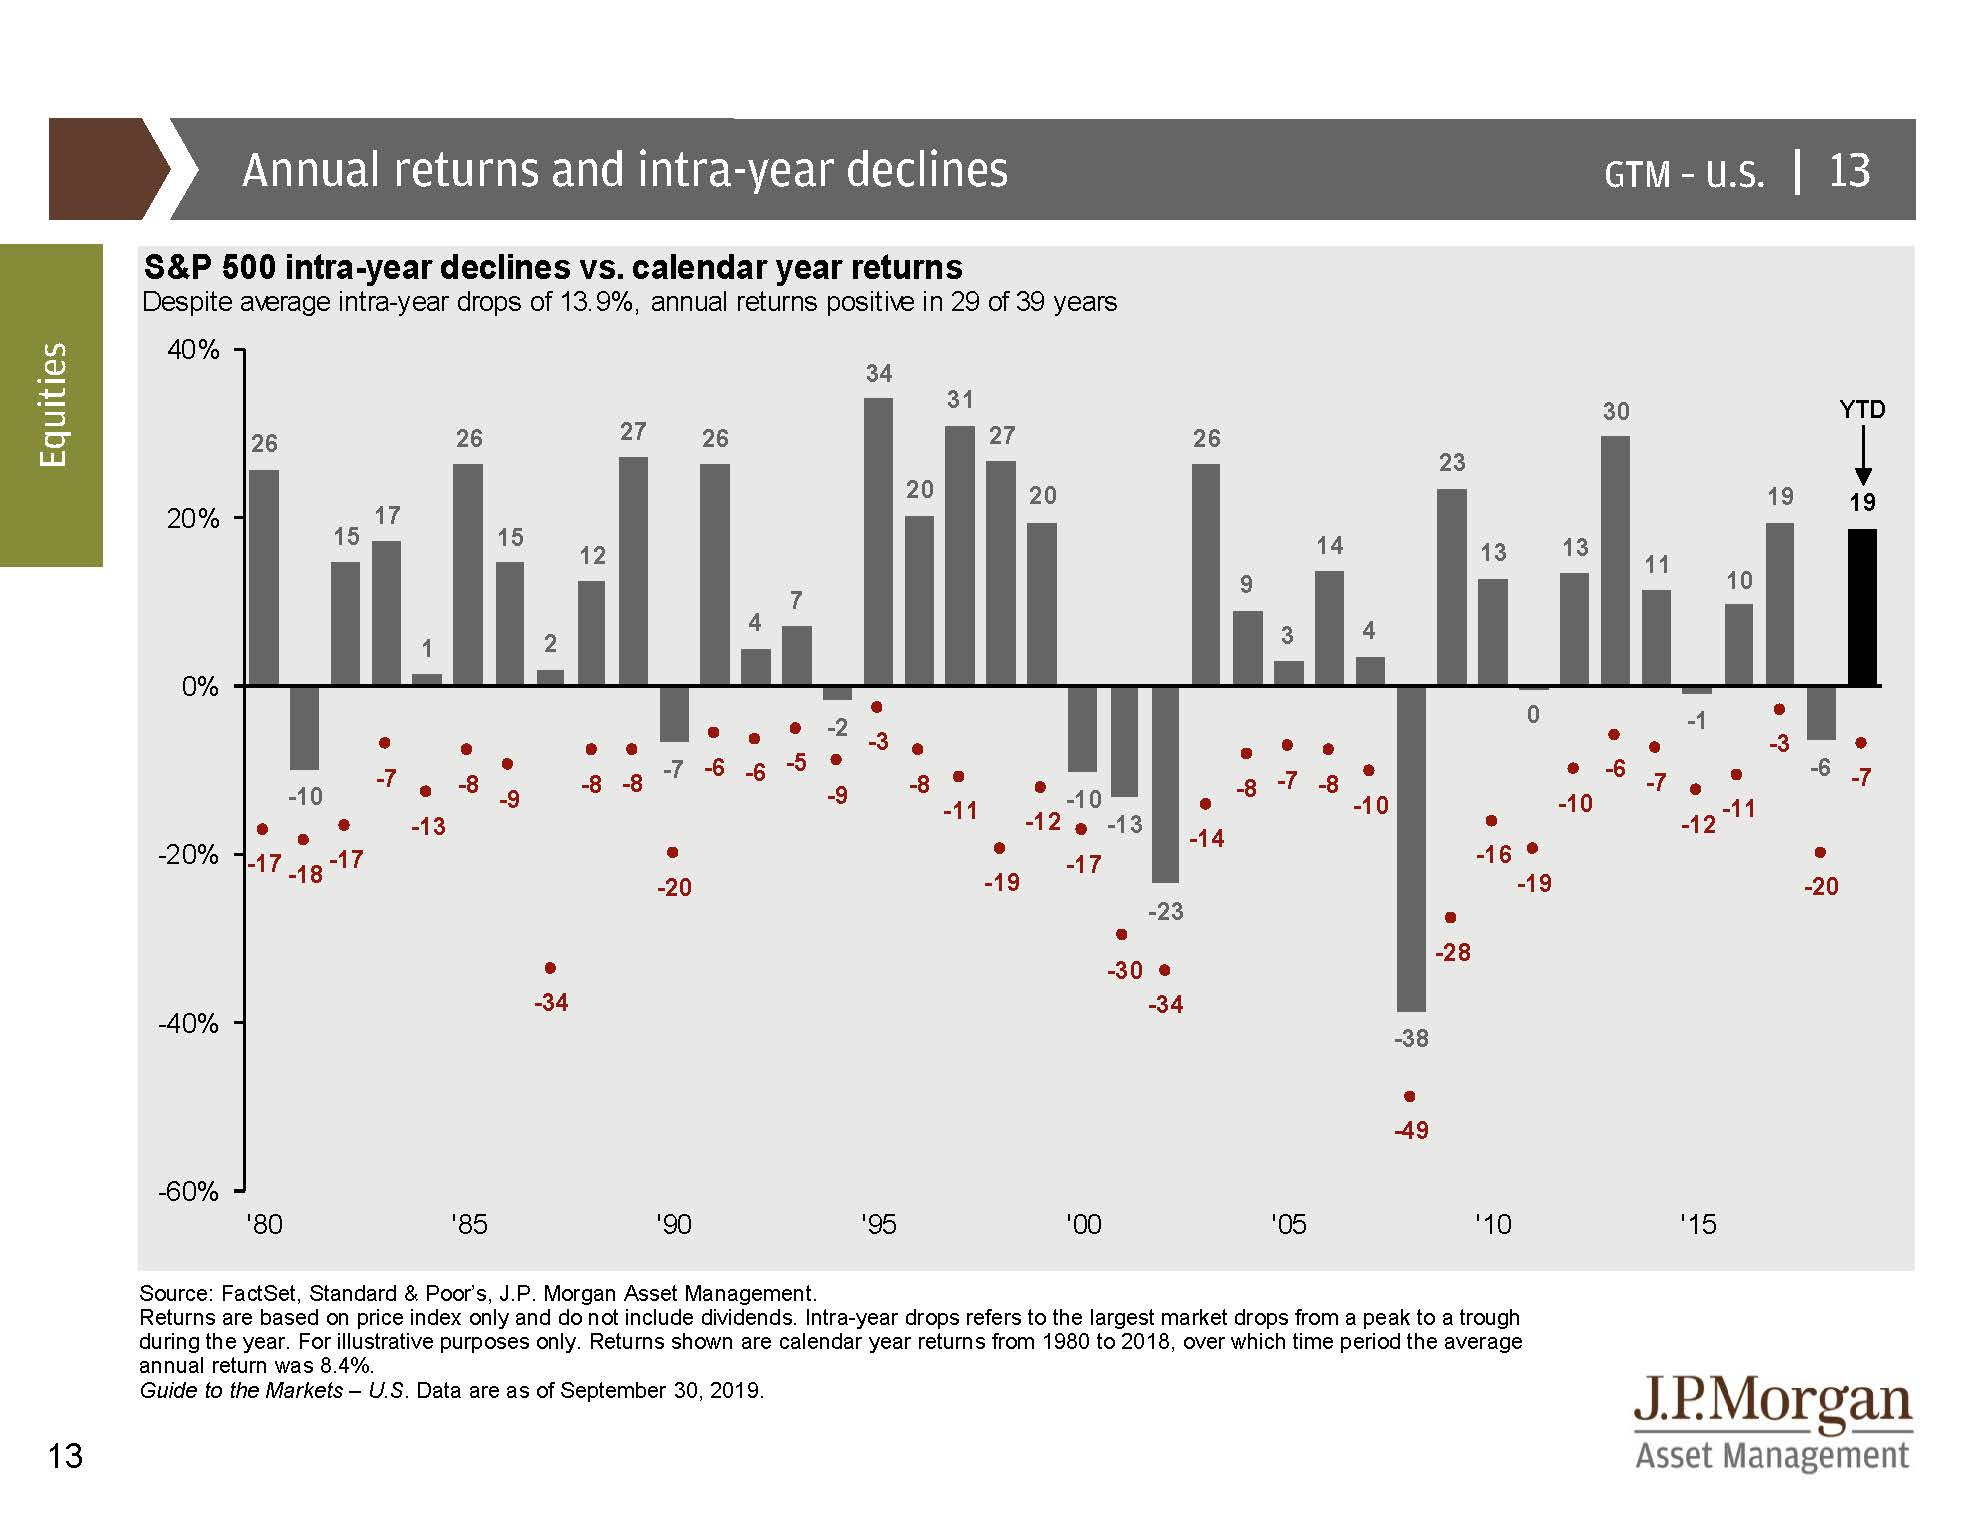 annual returns and intra-year declines graph